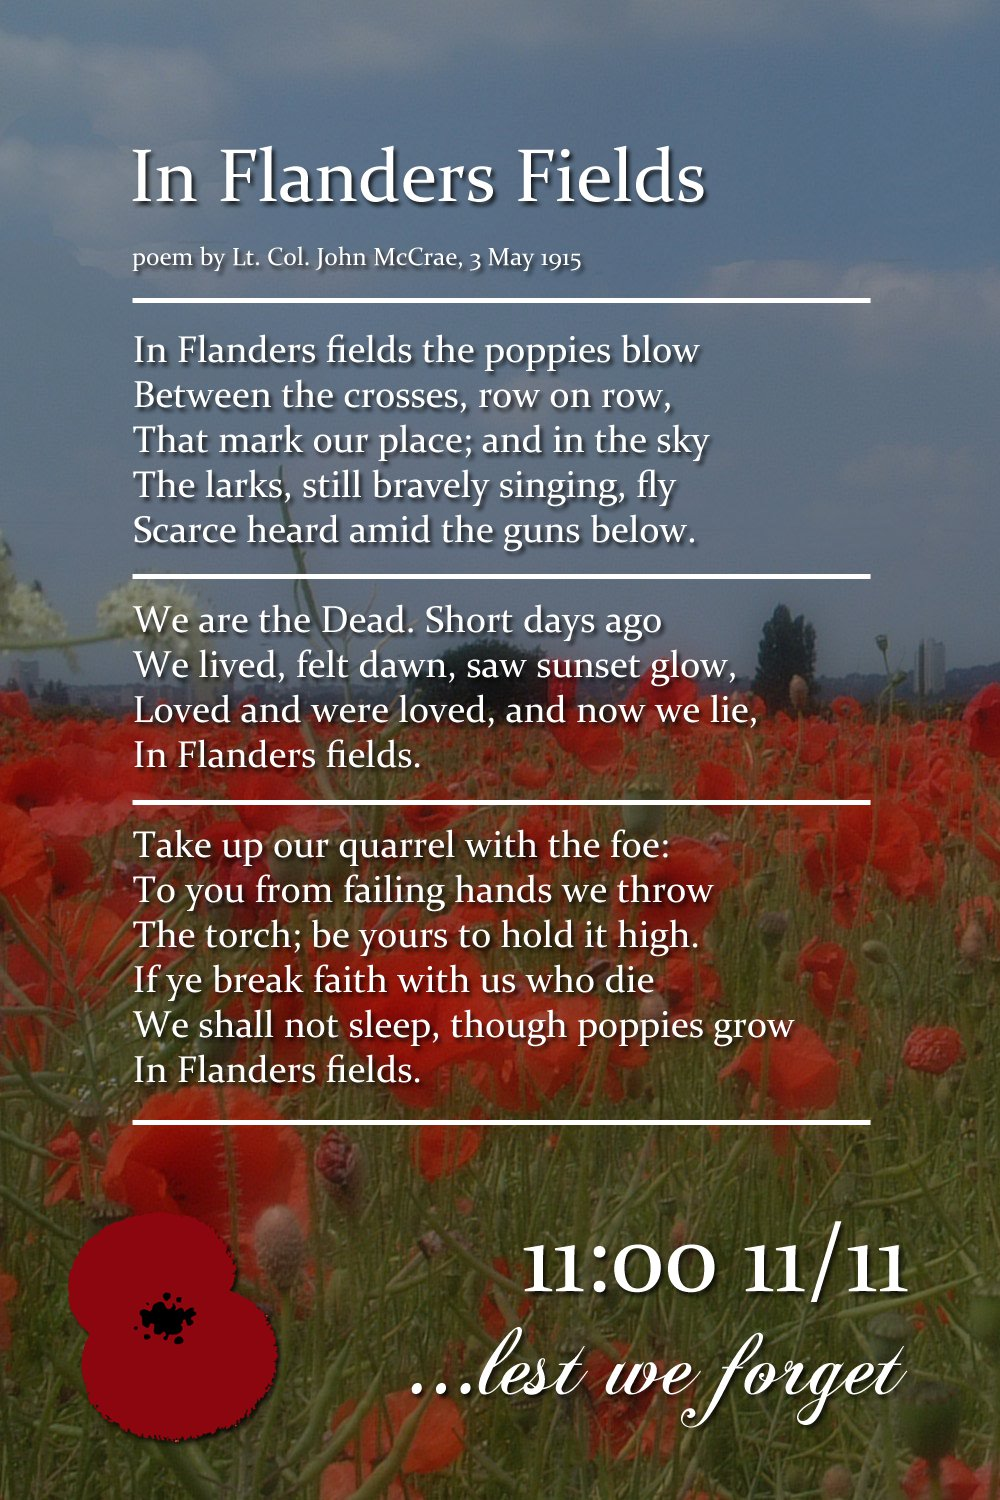 the importance of in flanders fields by colonel john mccrae essay John mccrae in flanders fields in mccrae essay fields flanders john poem ks1 university of chicago essay importance of time importance of driving.